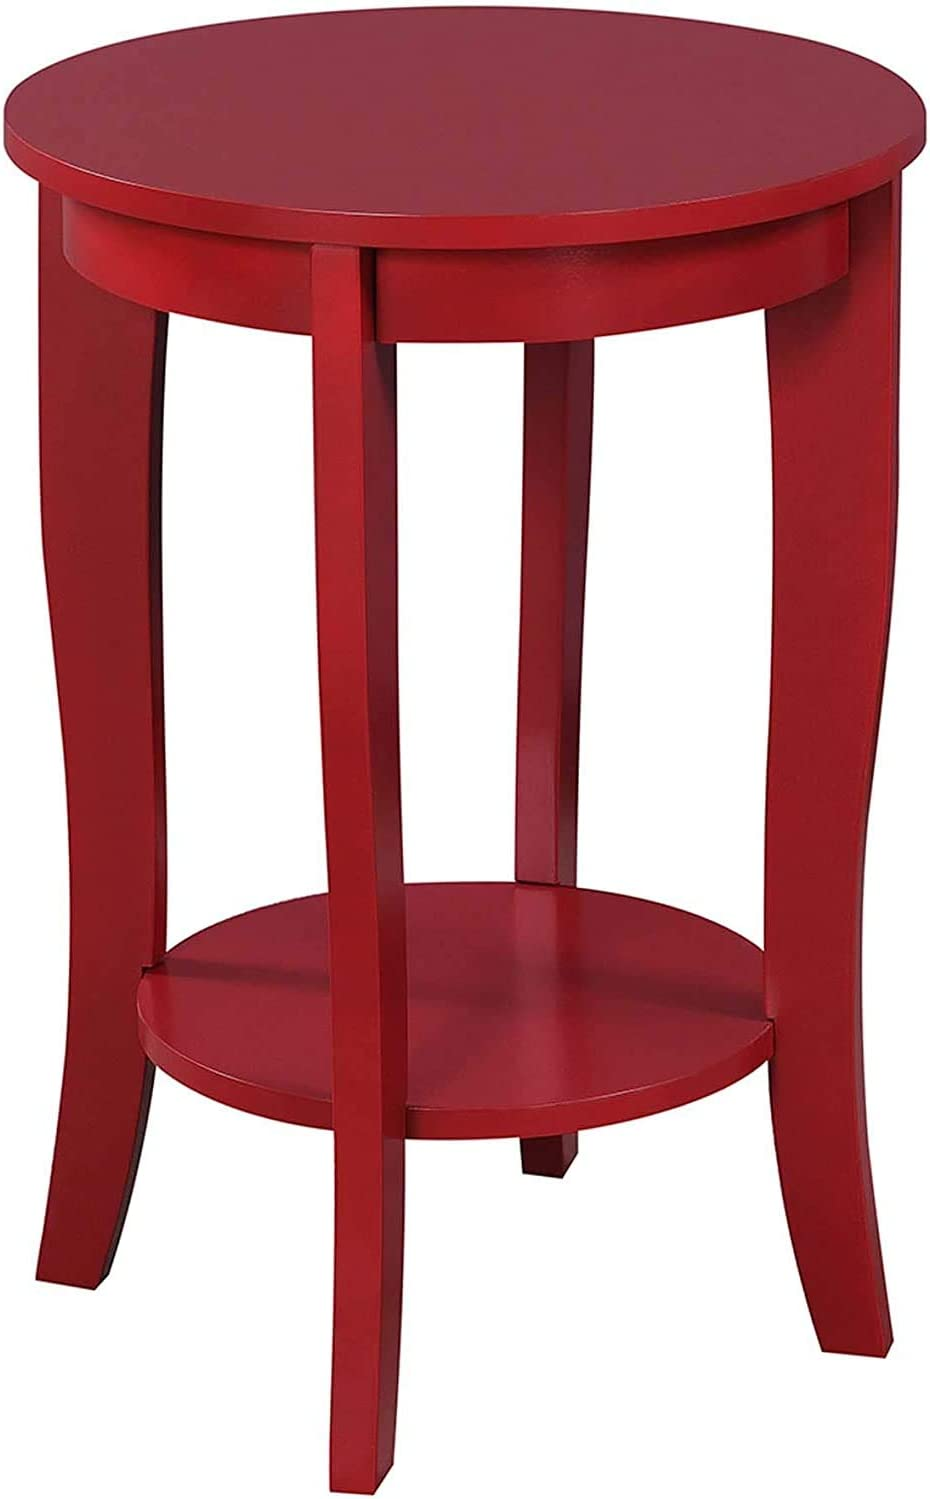 Convenience Concepts American Heritage Round End Table, Cranberry Red